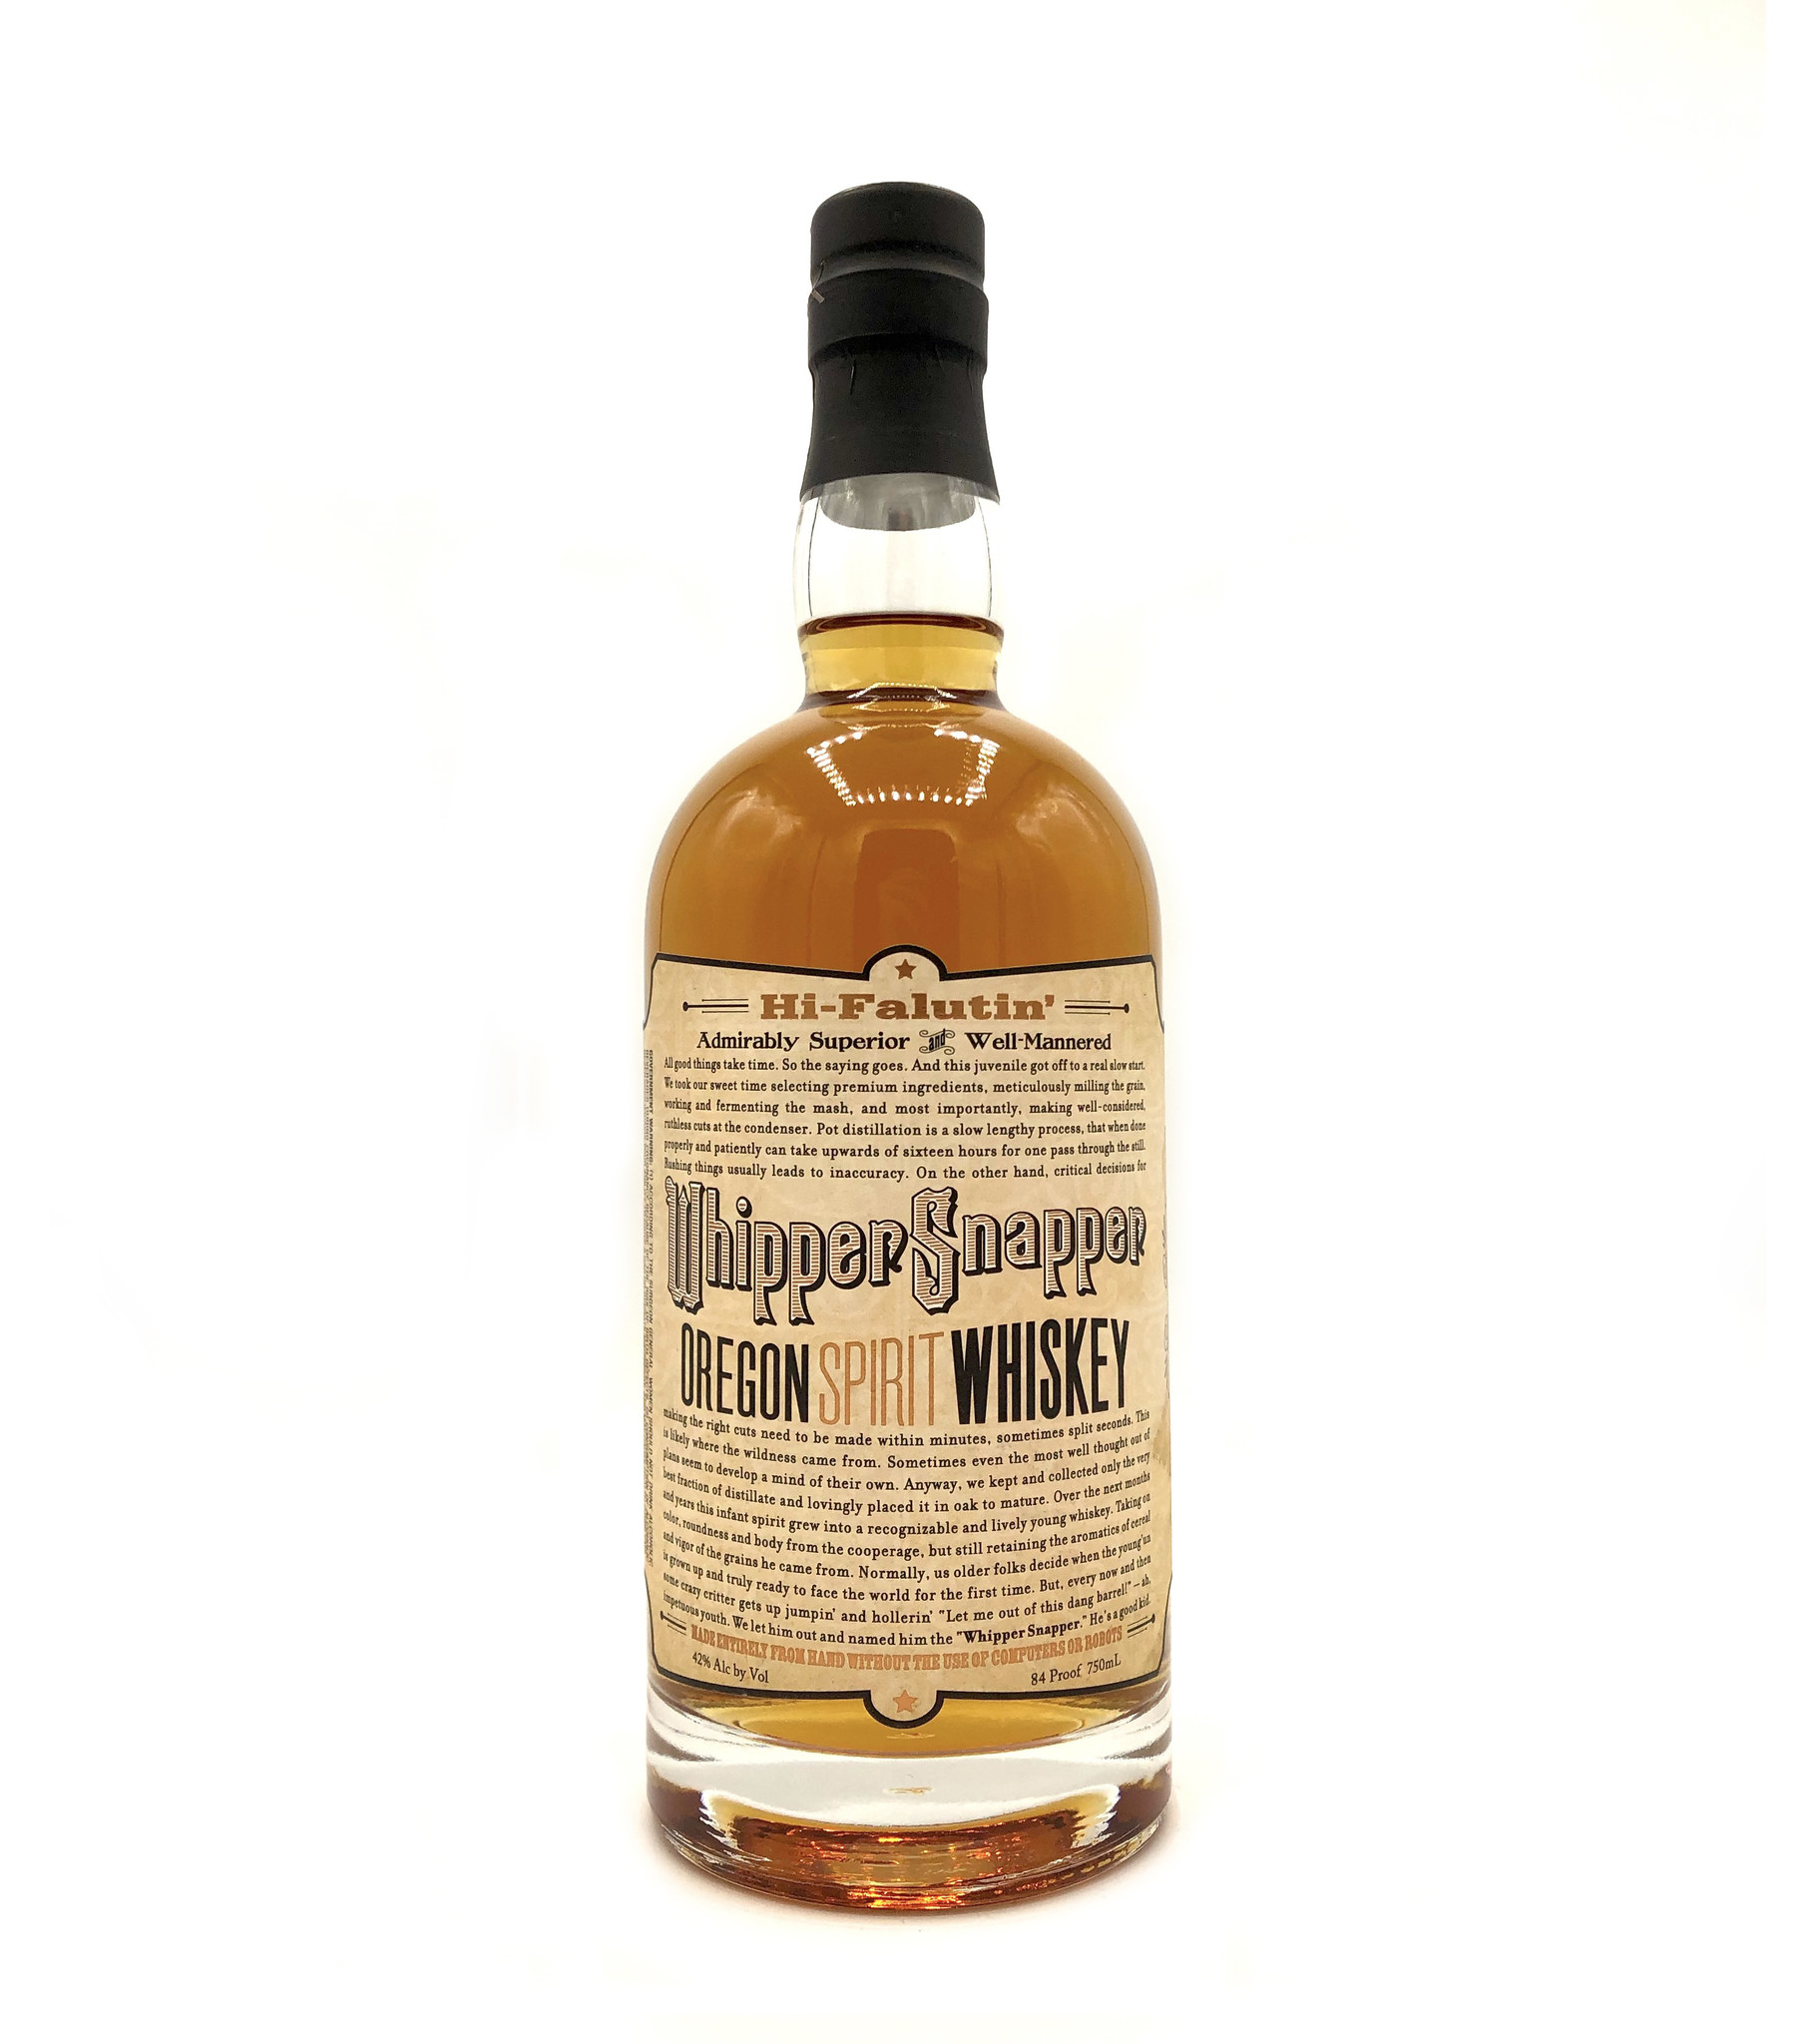 Oregon Whiskey Whipper Snapper